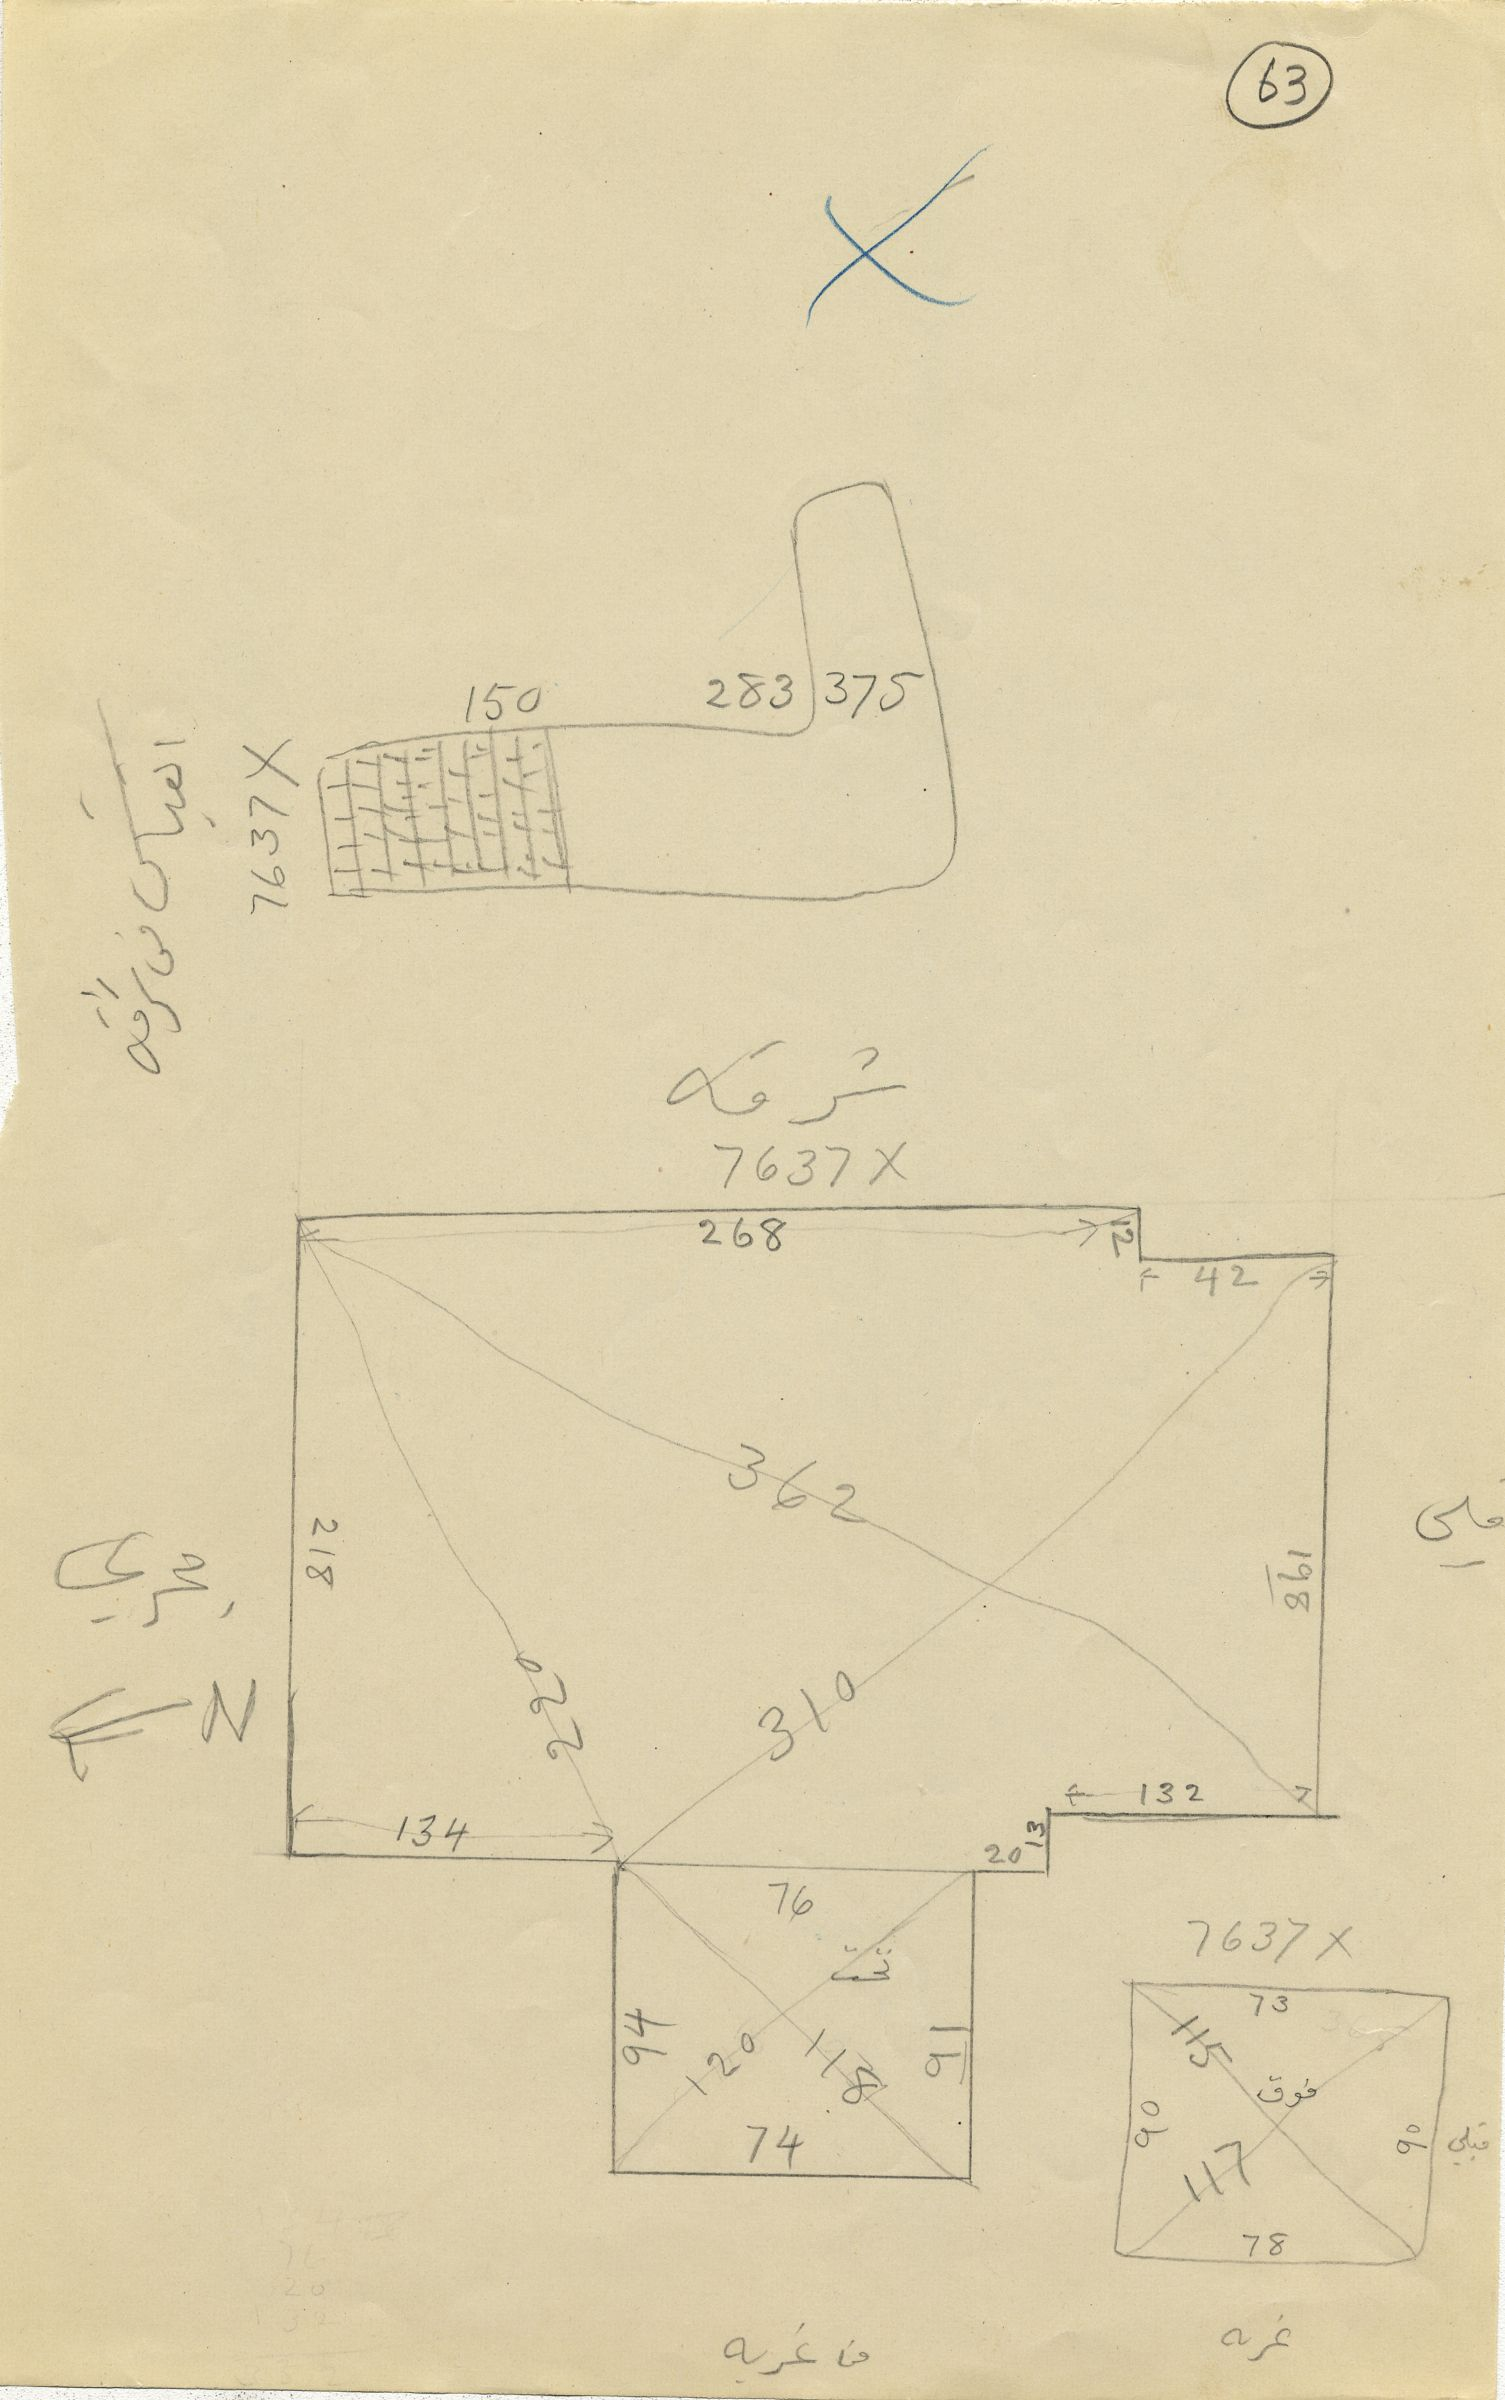 Maps and plans: G 7637, Shaft X